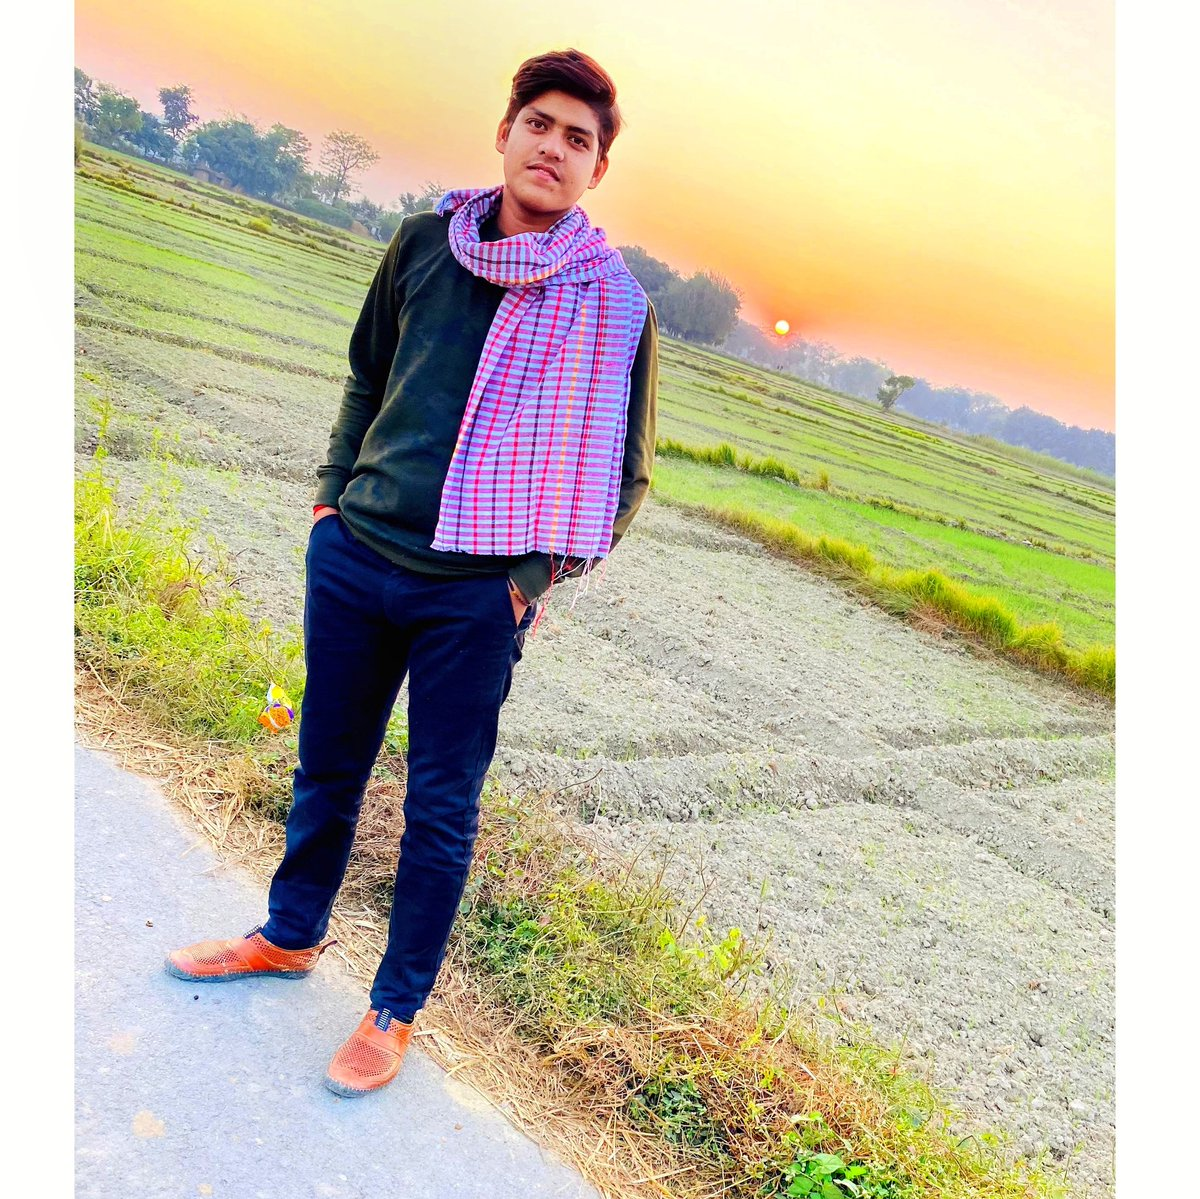 #NewProfilePic  #NewProfilePic2️⃣0️⃣2️⃣0️⃣  #sunset #sundayvibes